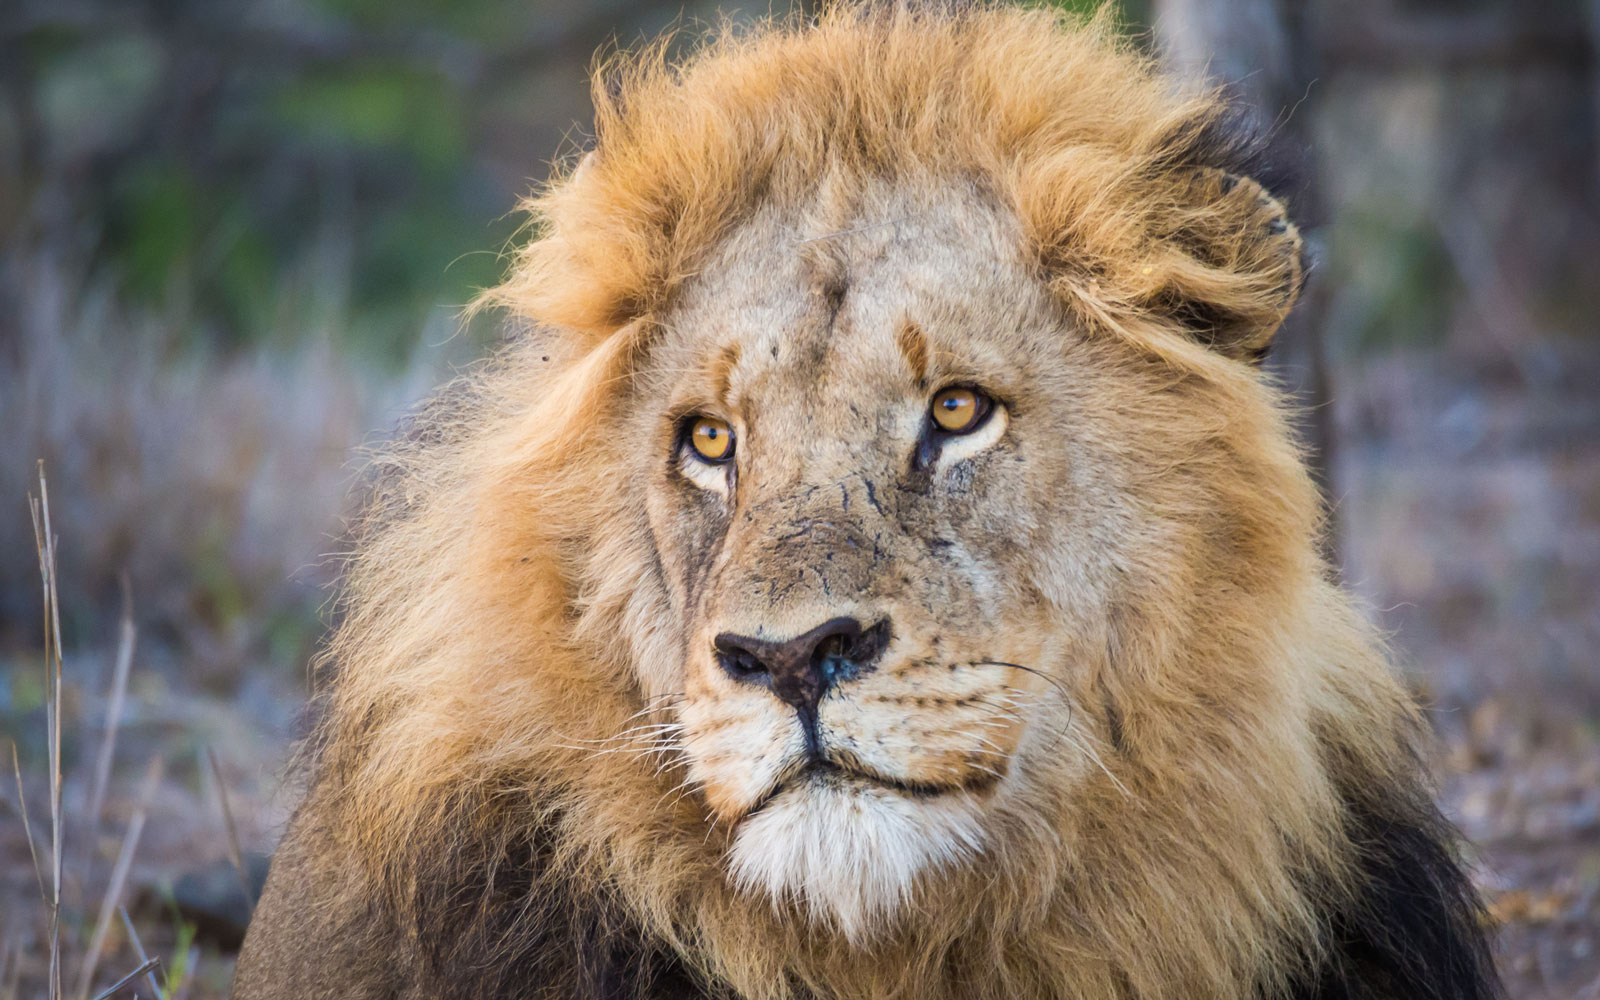 Close-Up Portrait Of Lion With Large Mane